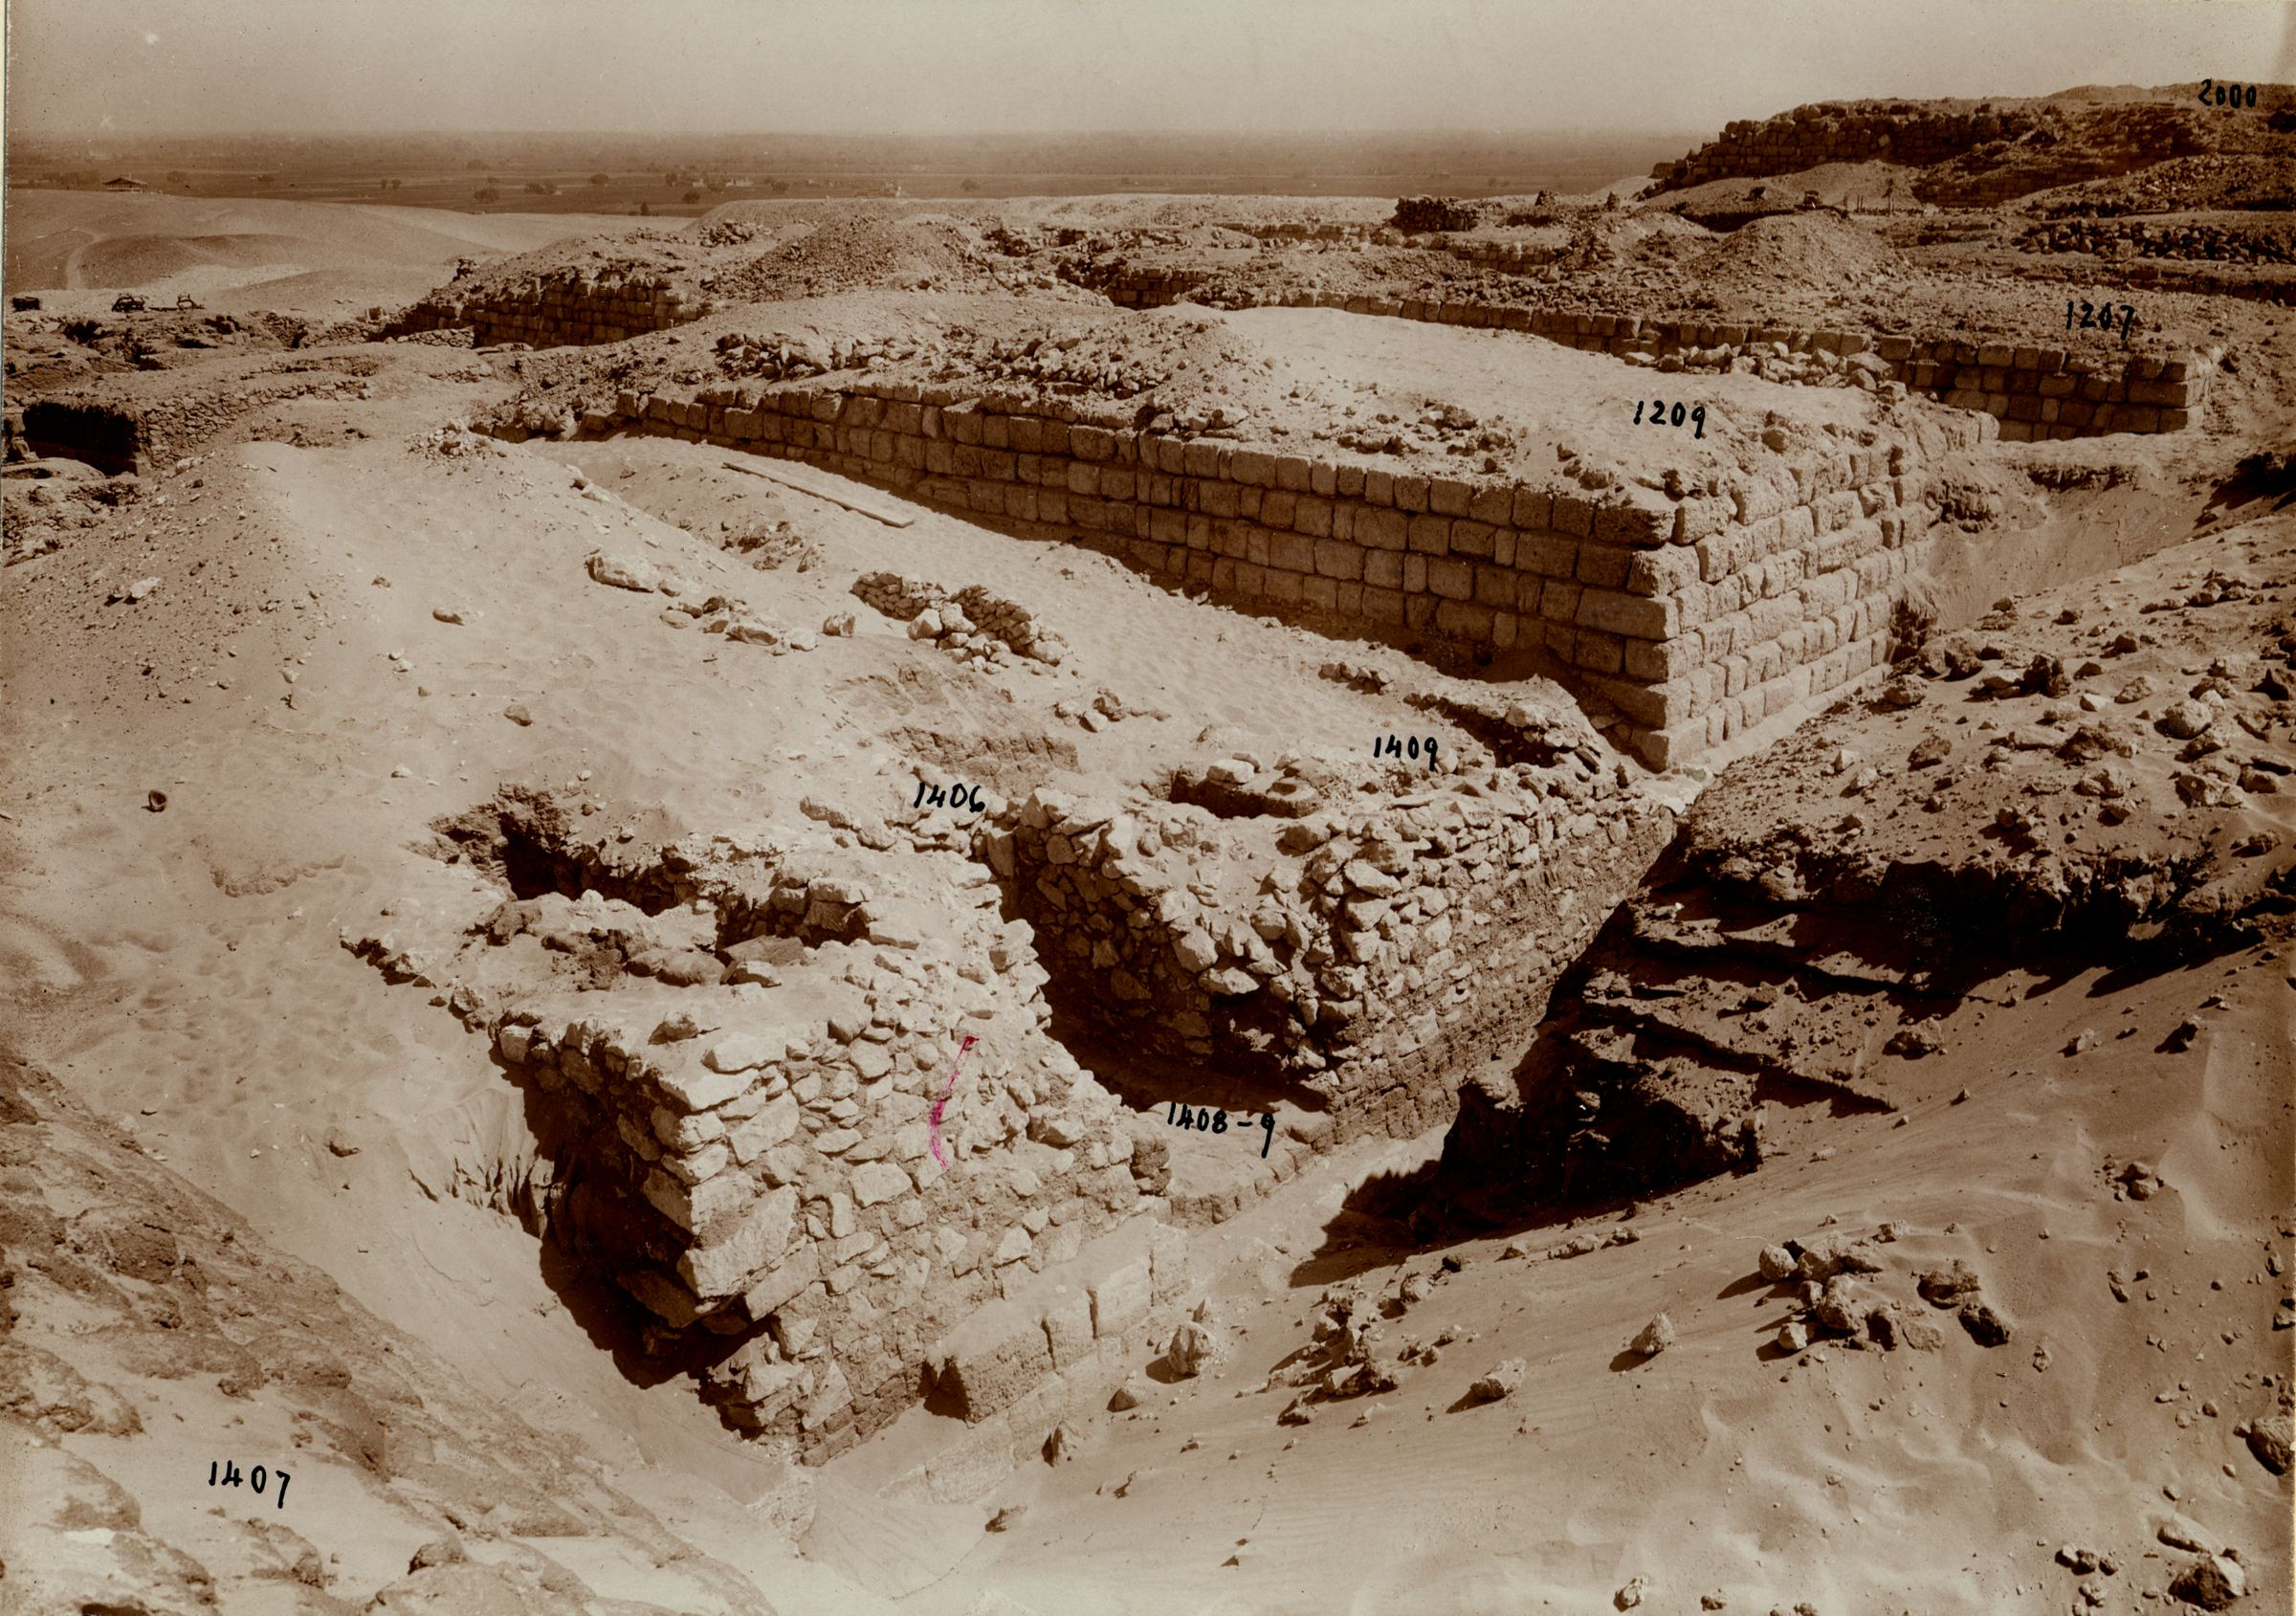 Western Cemetery: Site: Giza; View: G 1406, G 1407, G 1408+1409, G 1209